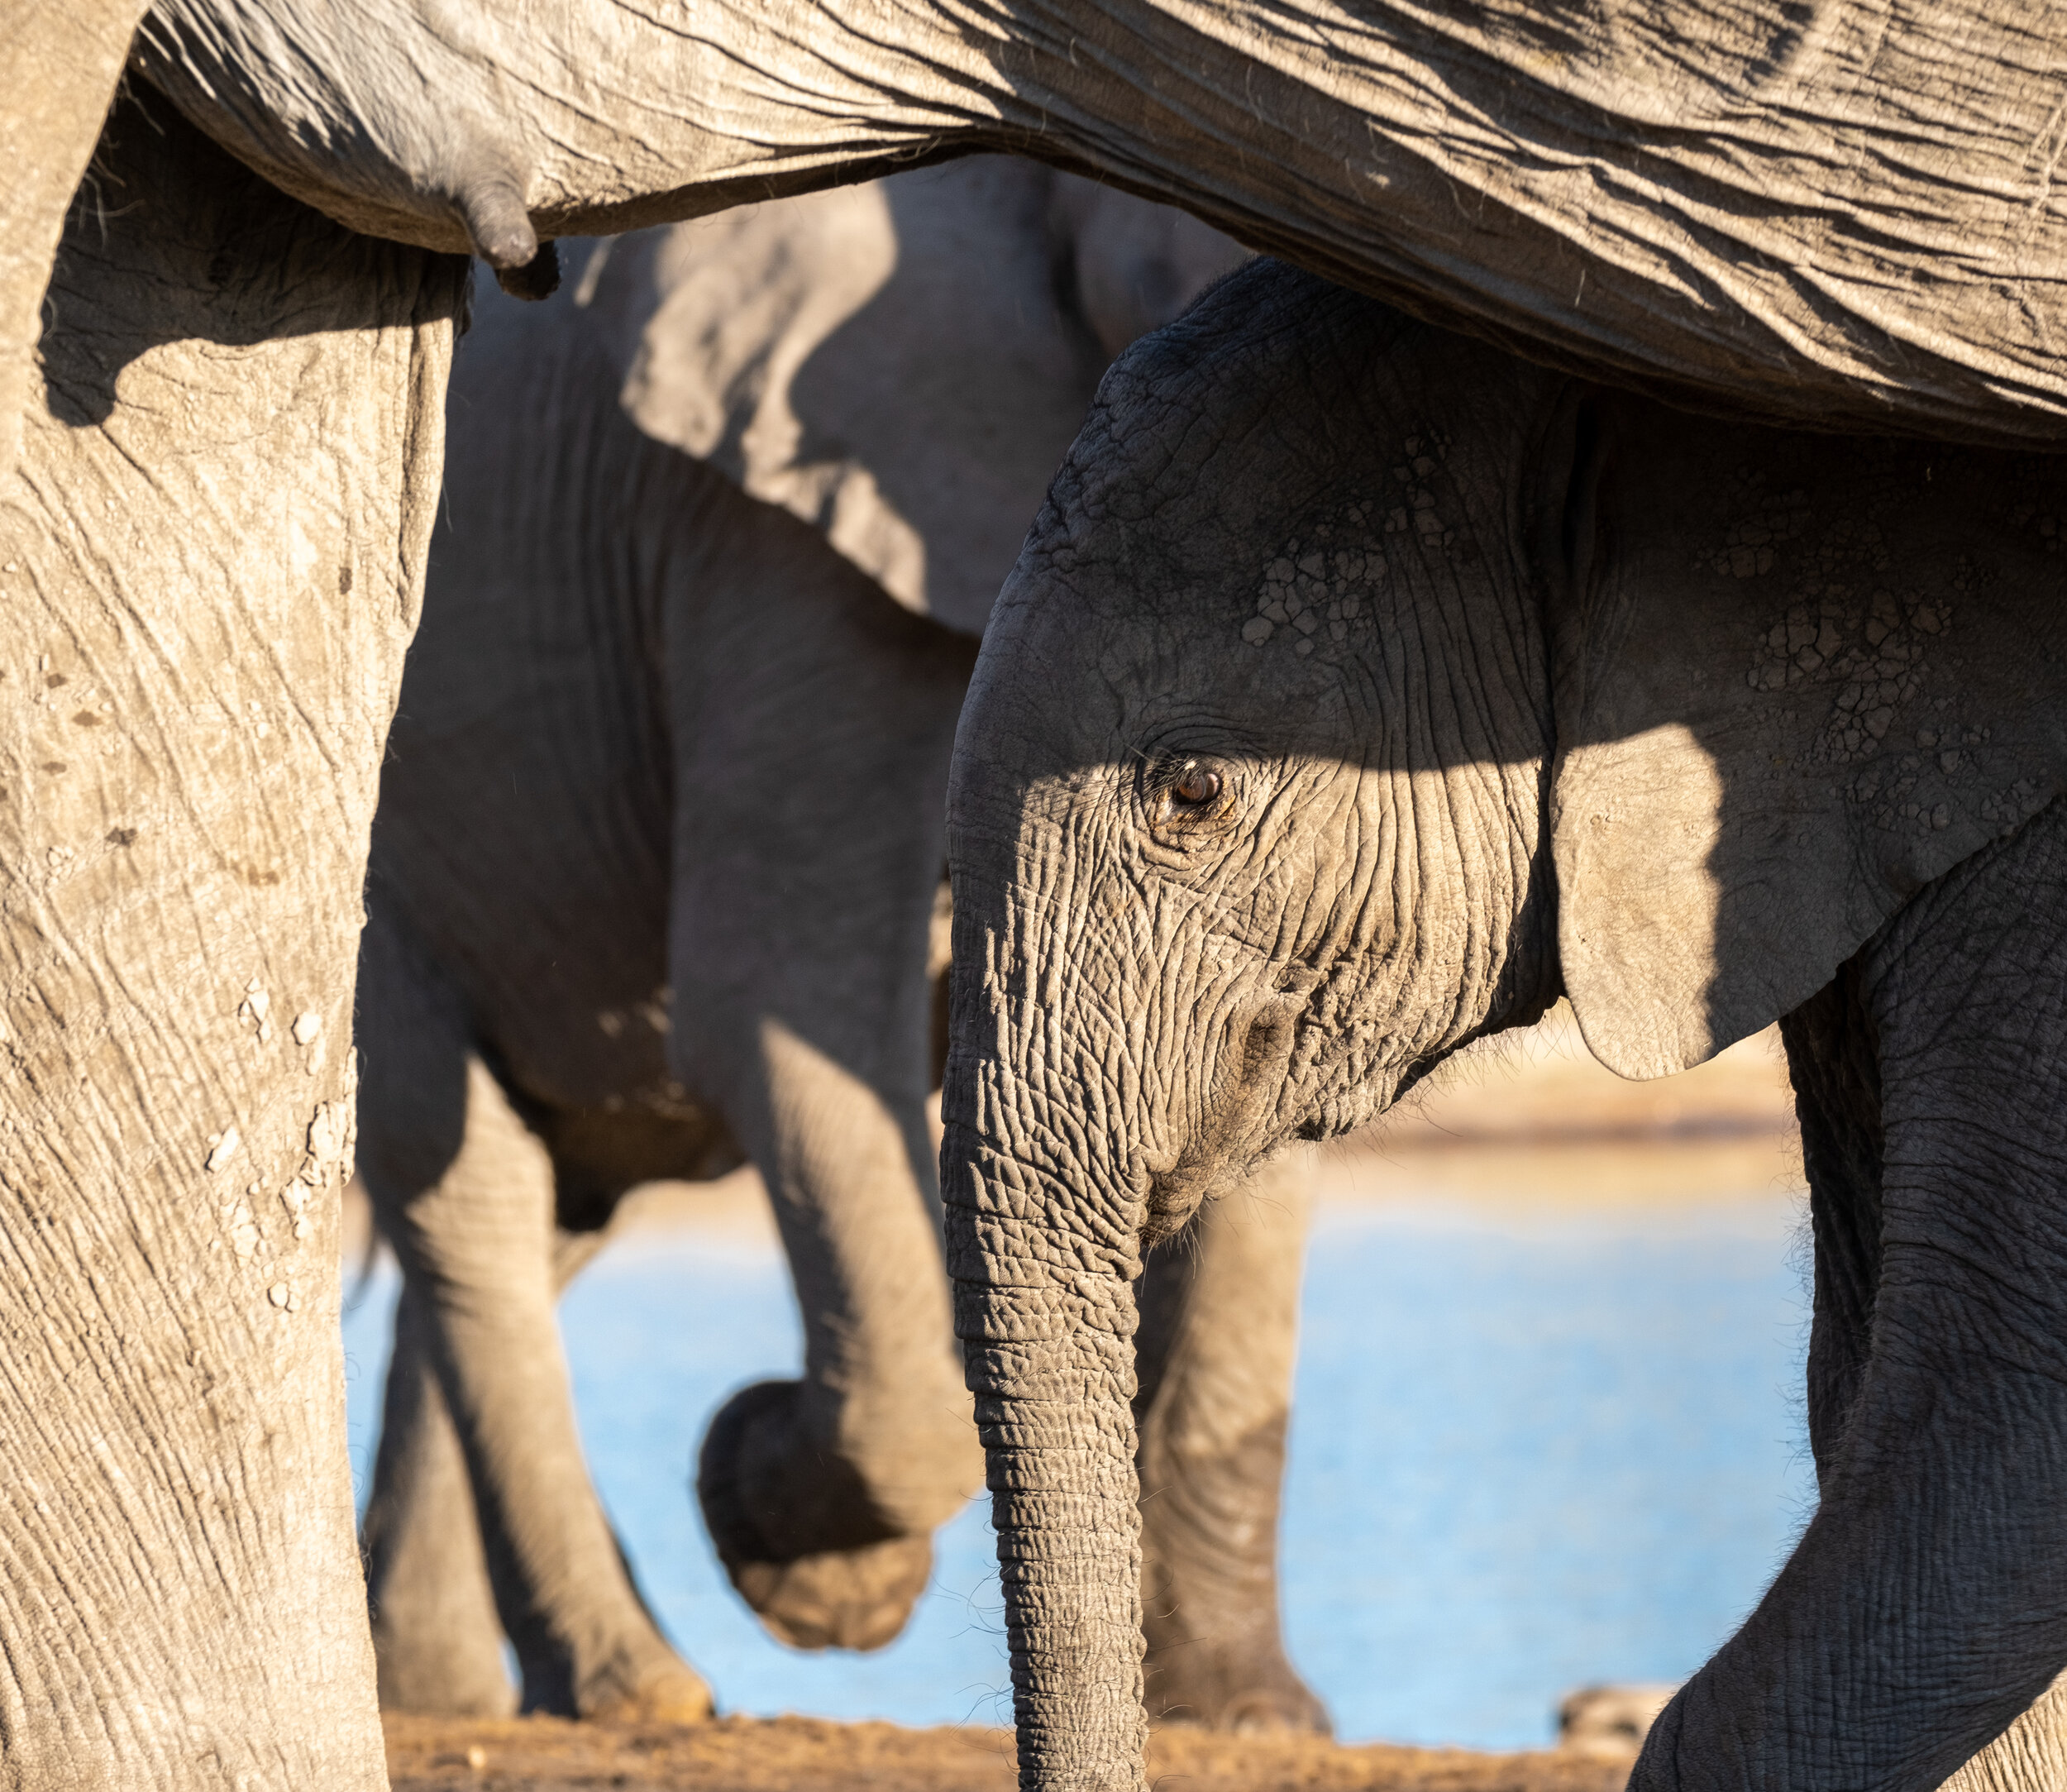 Heartbeat of Hwange - In the wild heart of Zimbabwe's largest national park, travellers find purpose on a safari that saves lives.